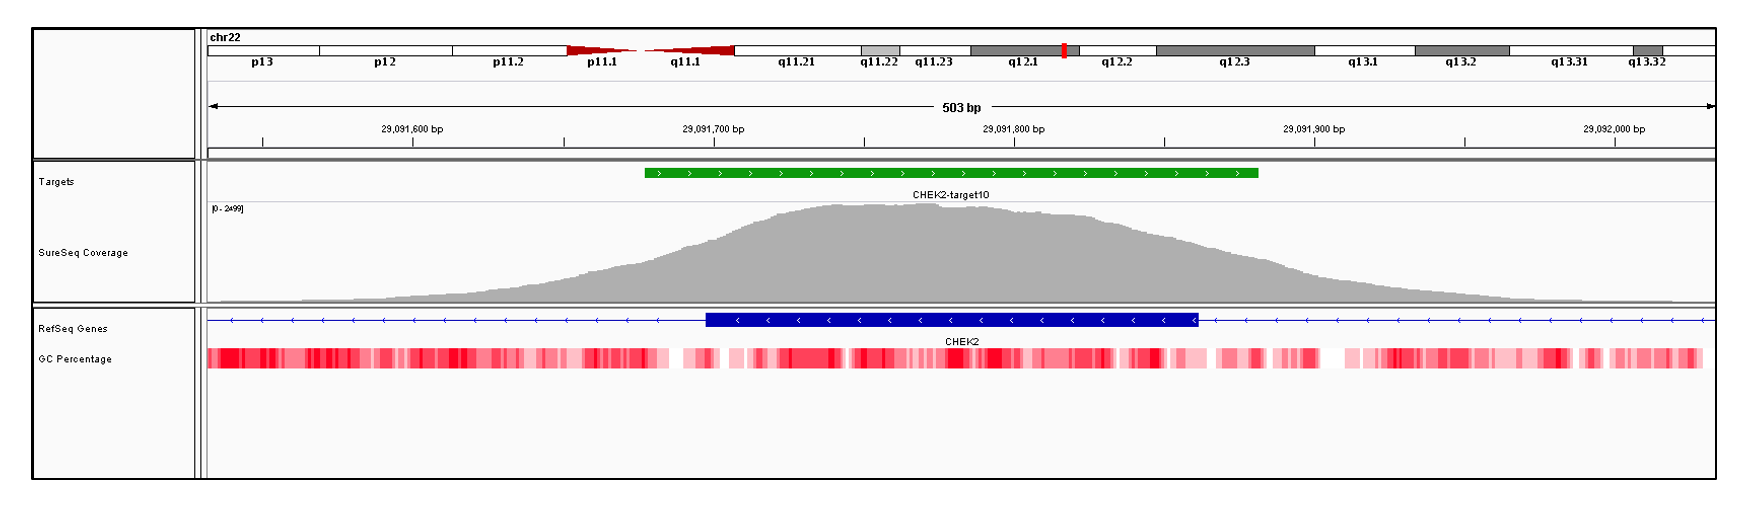 CHEK2 Exon 10 (hg19 chr22:29091698-29091861). Depth of coverage per base (grey). Targeted region (green). Gene coding region as defined by RefSeq (blue). GC percentage (red). Image